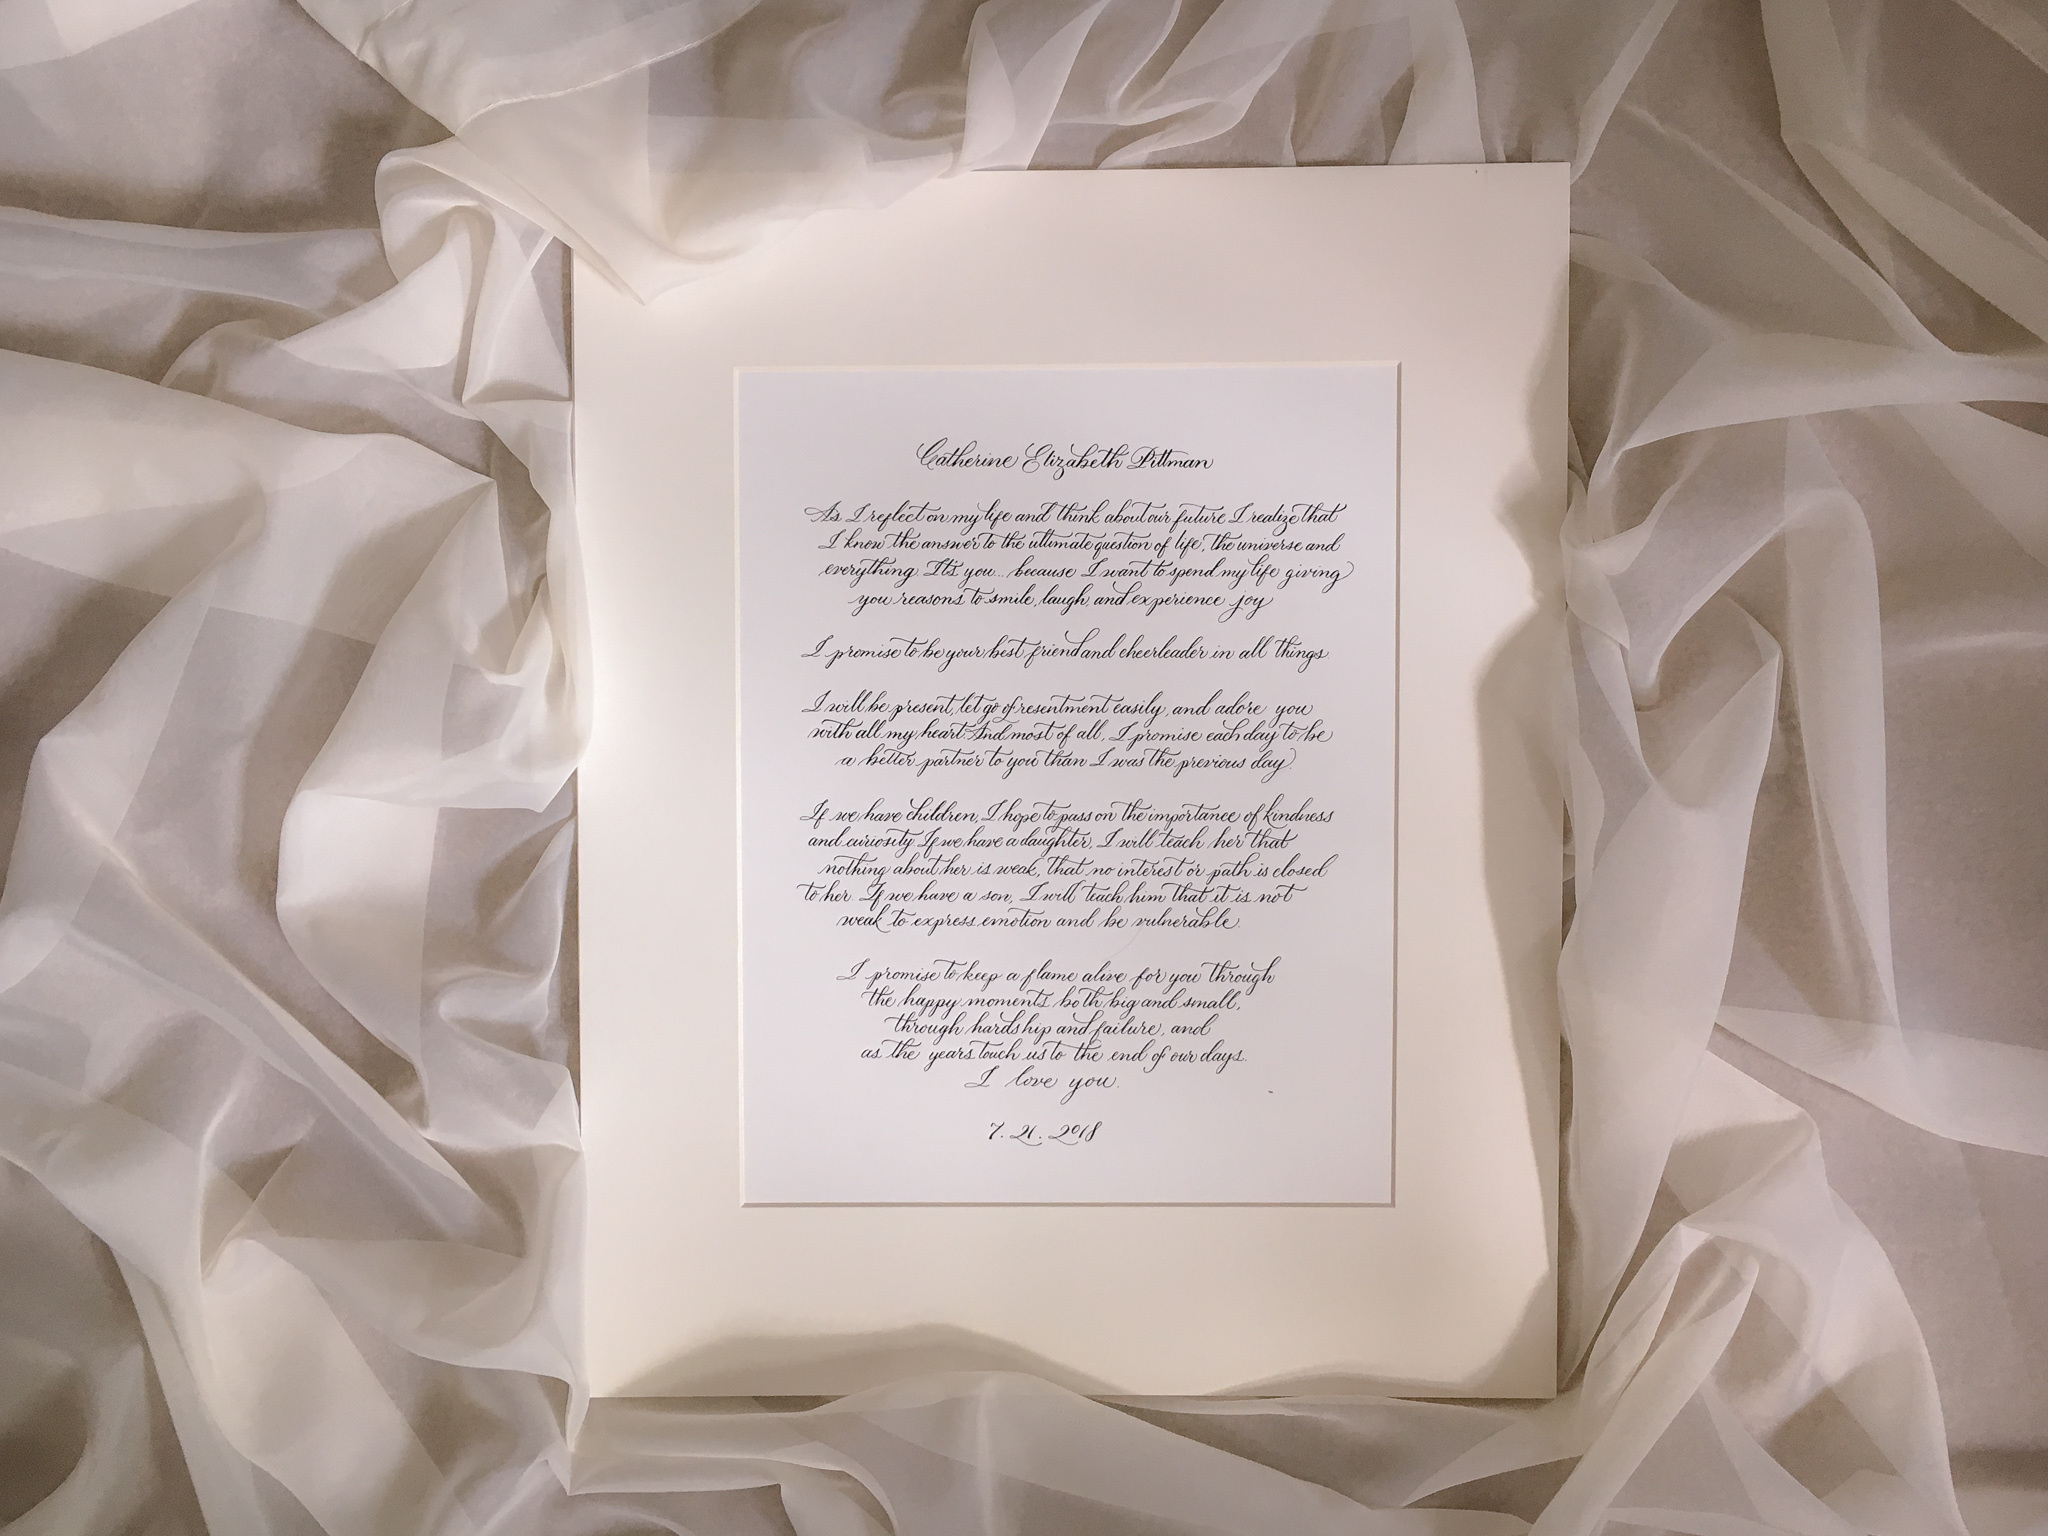 Calligraphy-wedding-vows.jpg